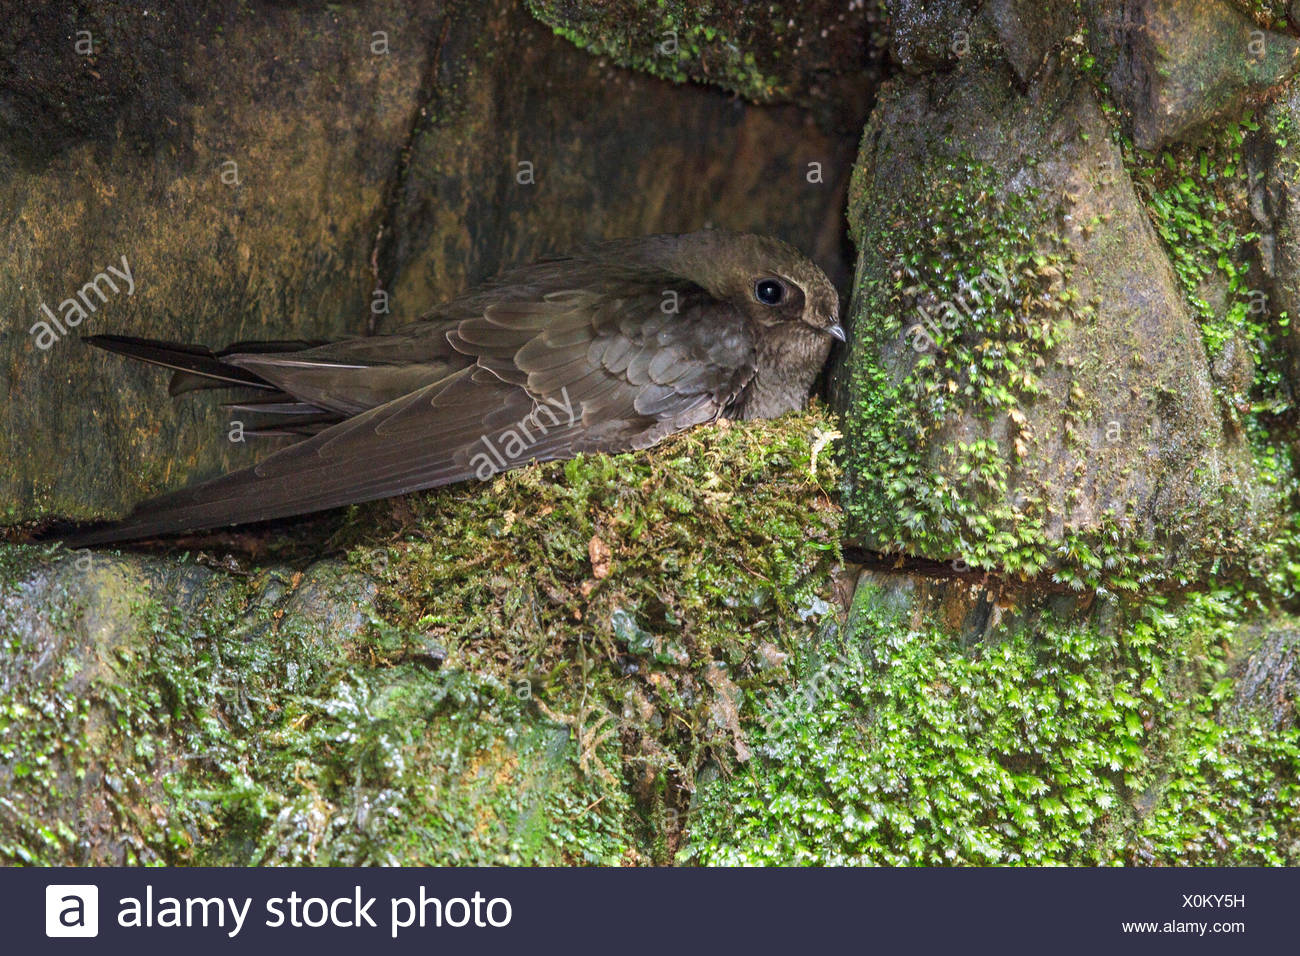 Sooty Swift (Cypseloides fumigatus) nesting on a cliff in the Atlantic rainforest of southeast Brazil. - Stock Image